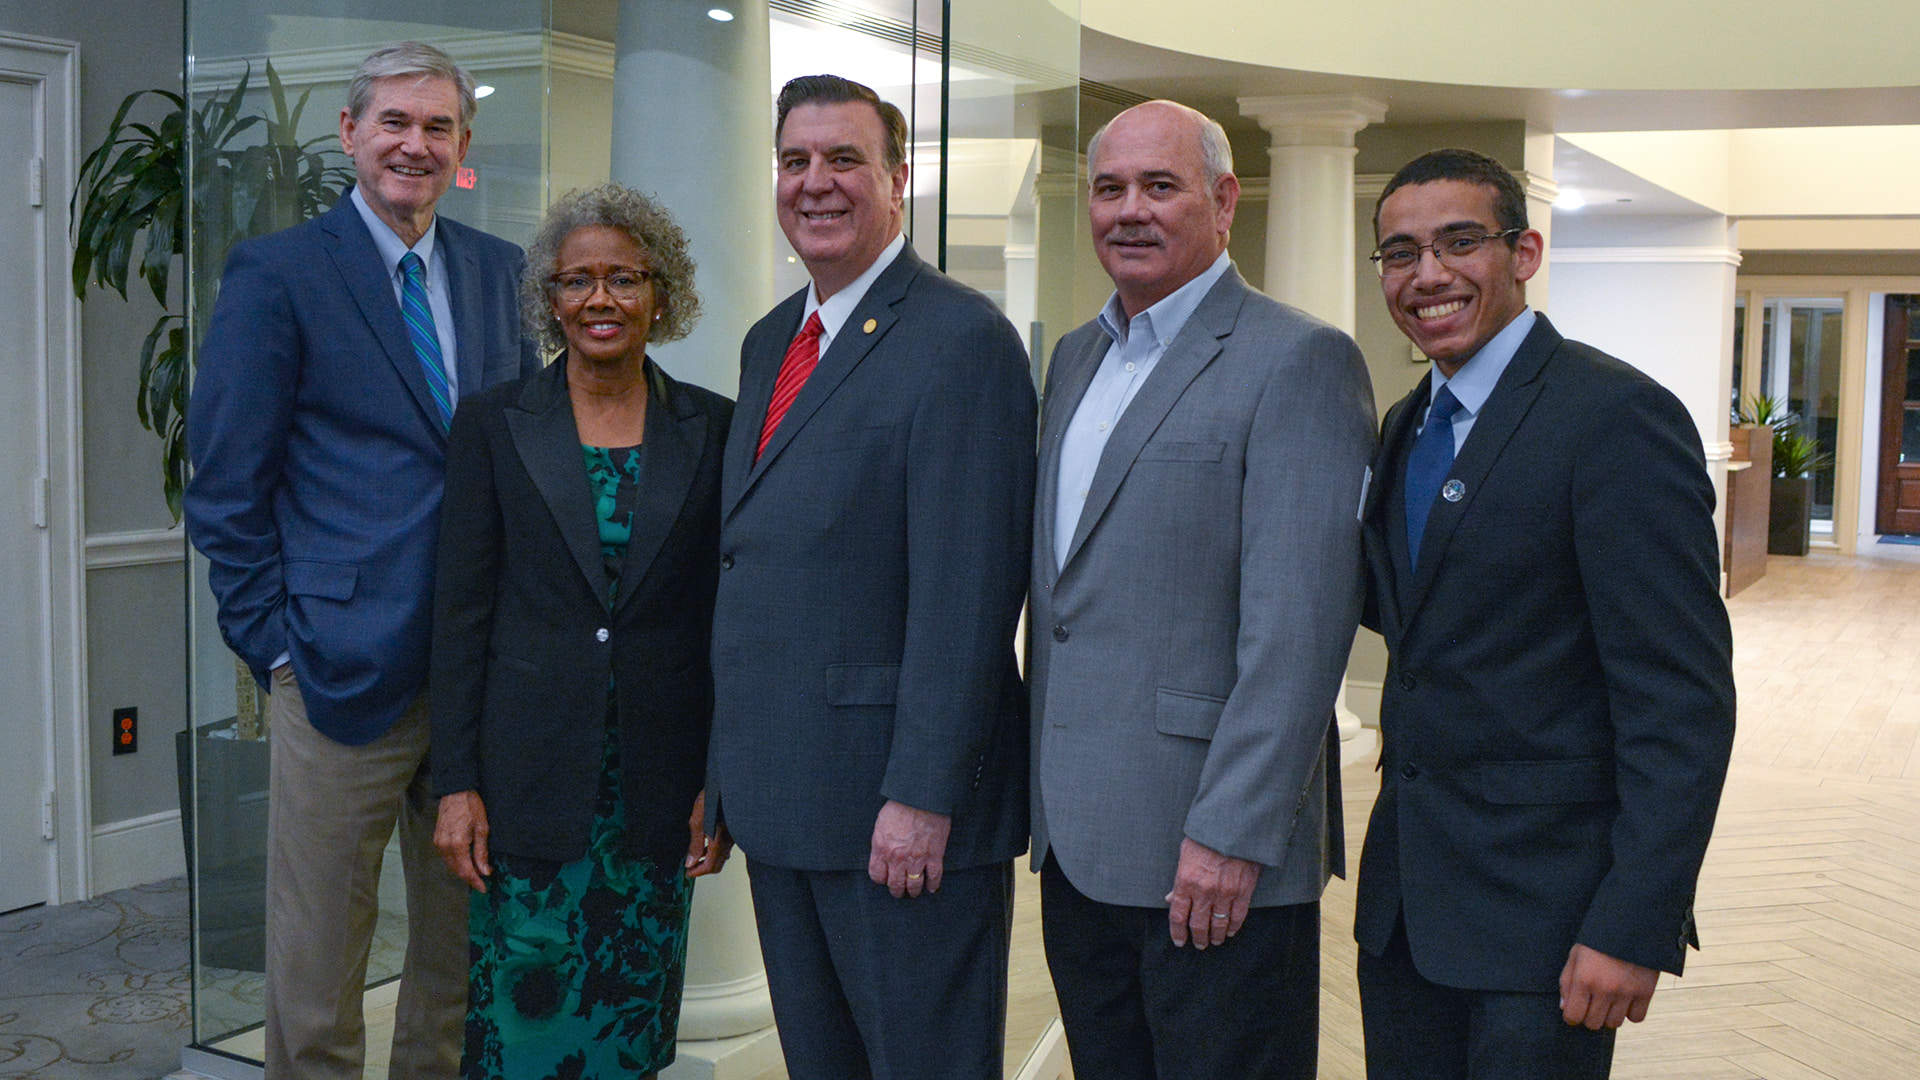 Legislators, special guests attend UHCL Holiday Appreciation Reception